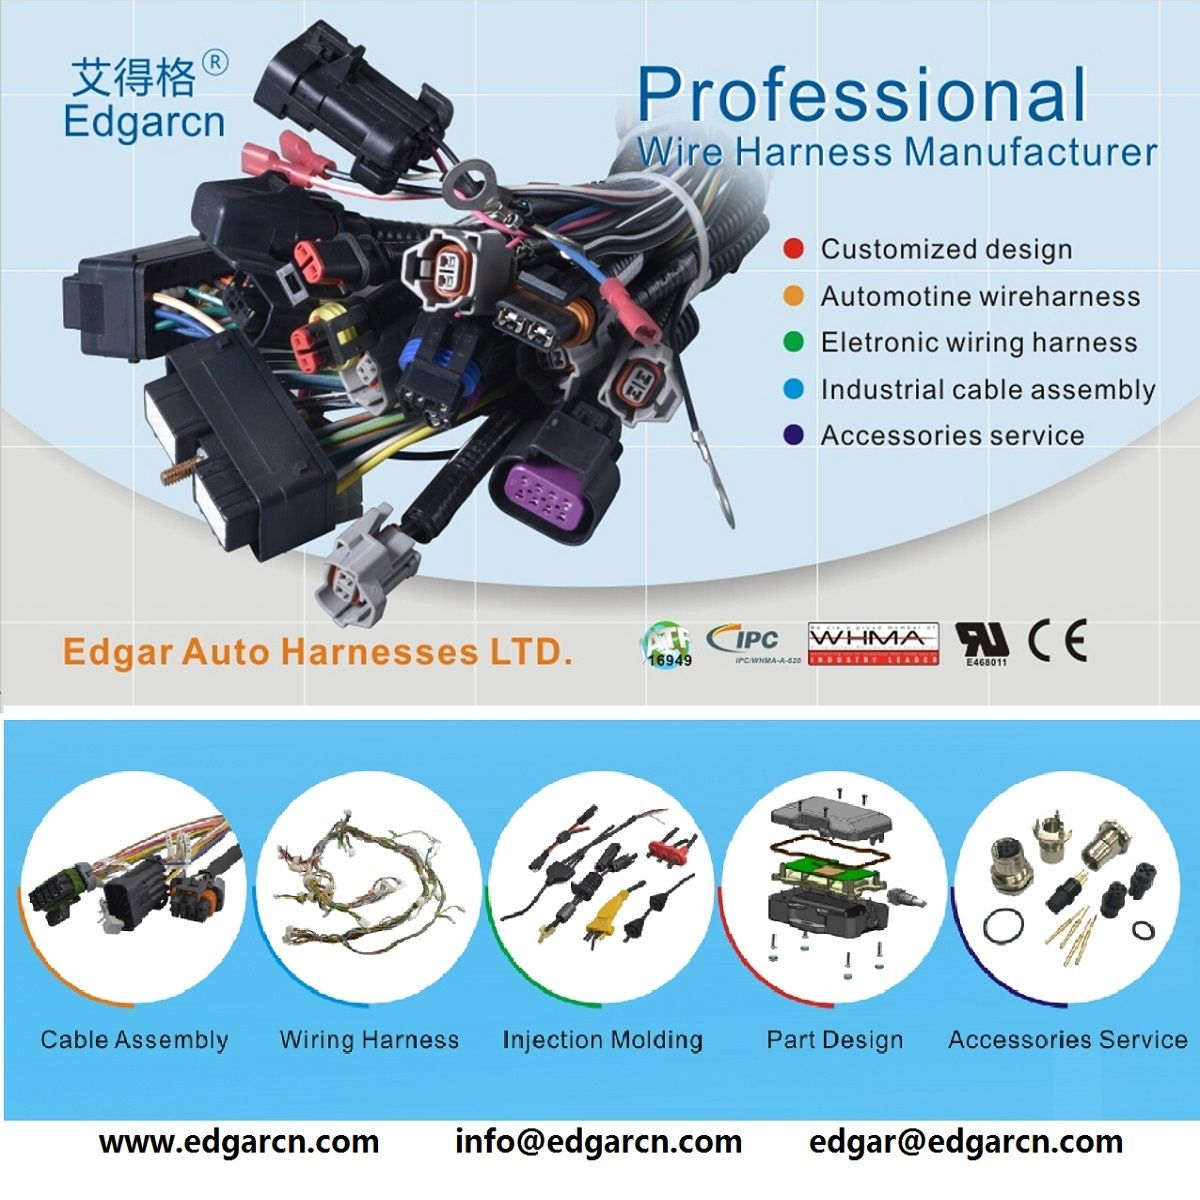 E Electronic Wireharness D Data Communication Cable G